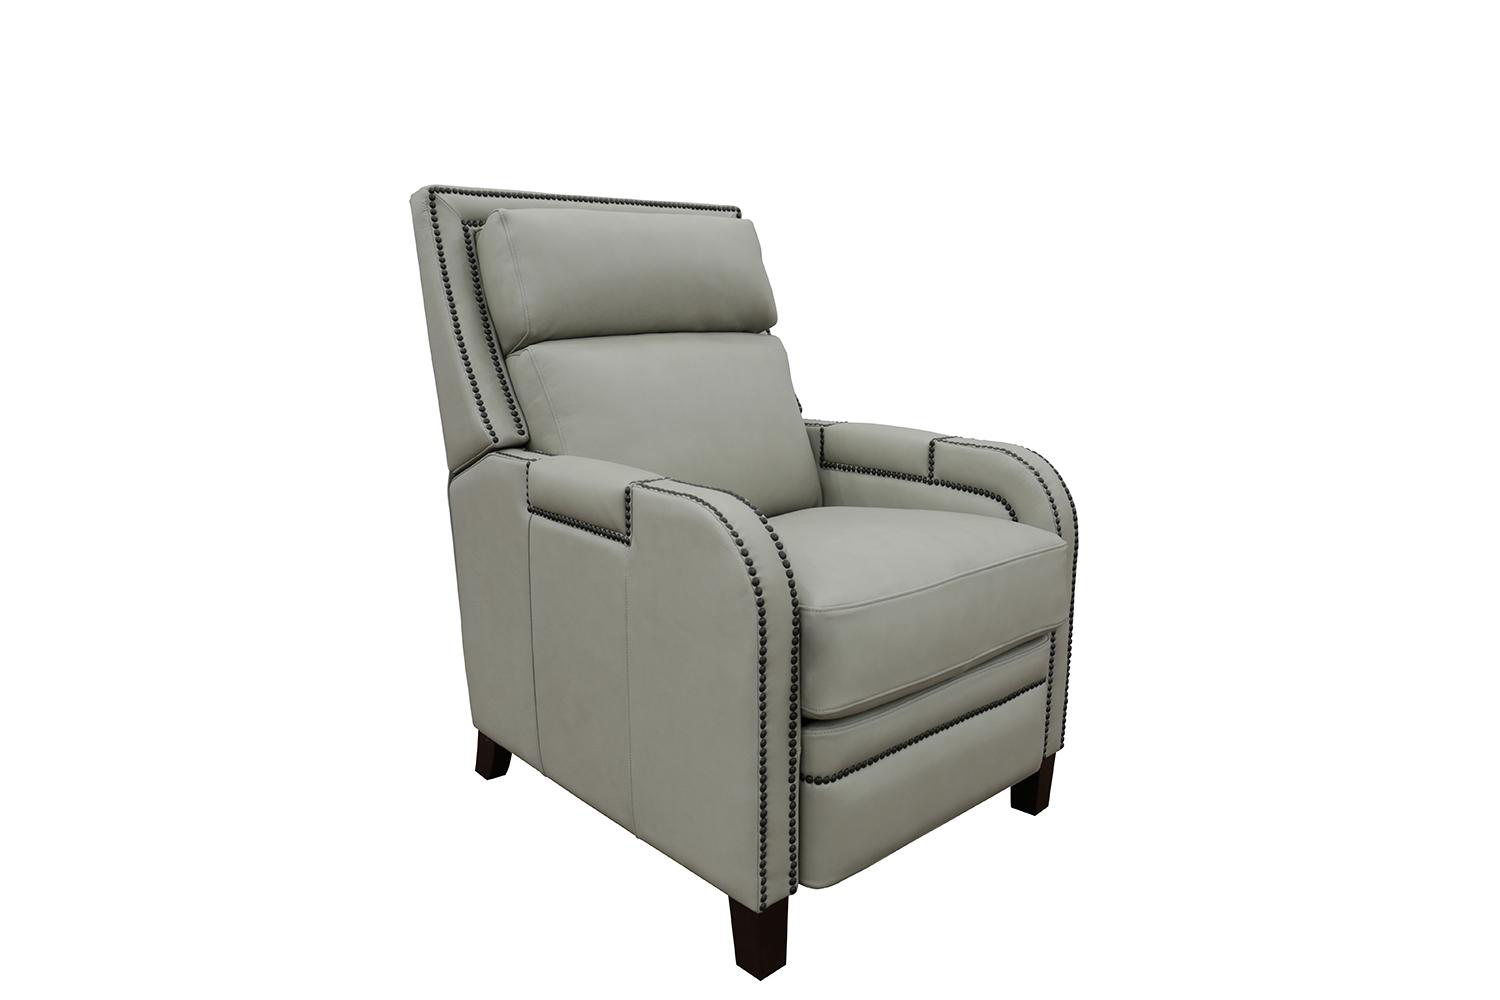 Barcalounger Cambridge Recliner Chair - Wenlock Dove/All Leather